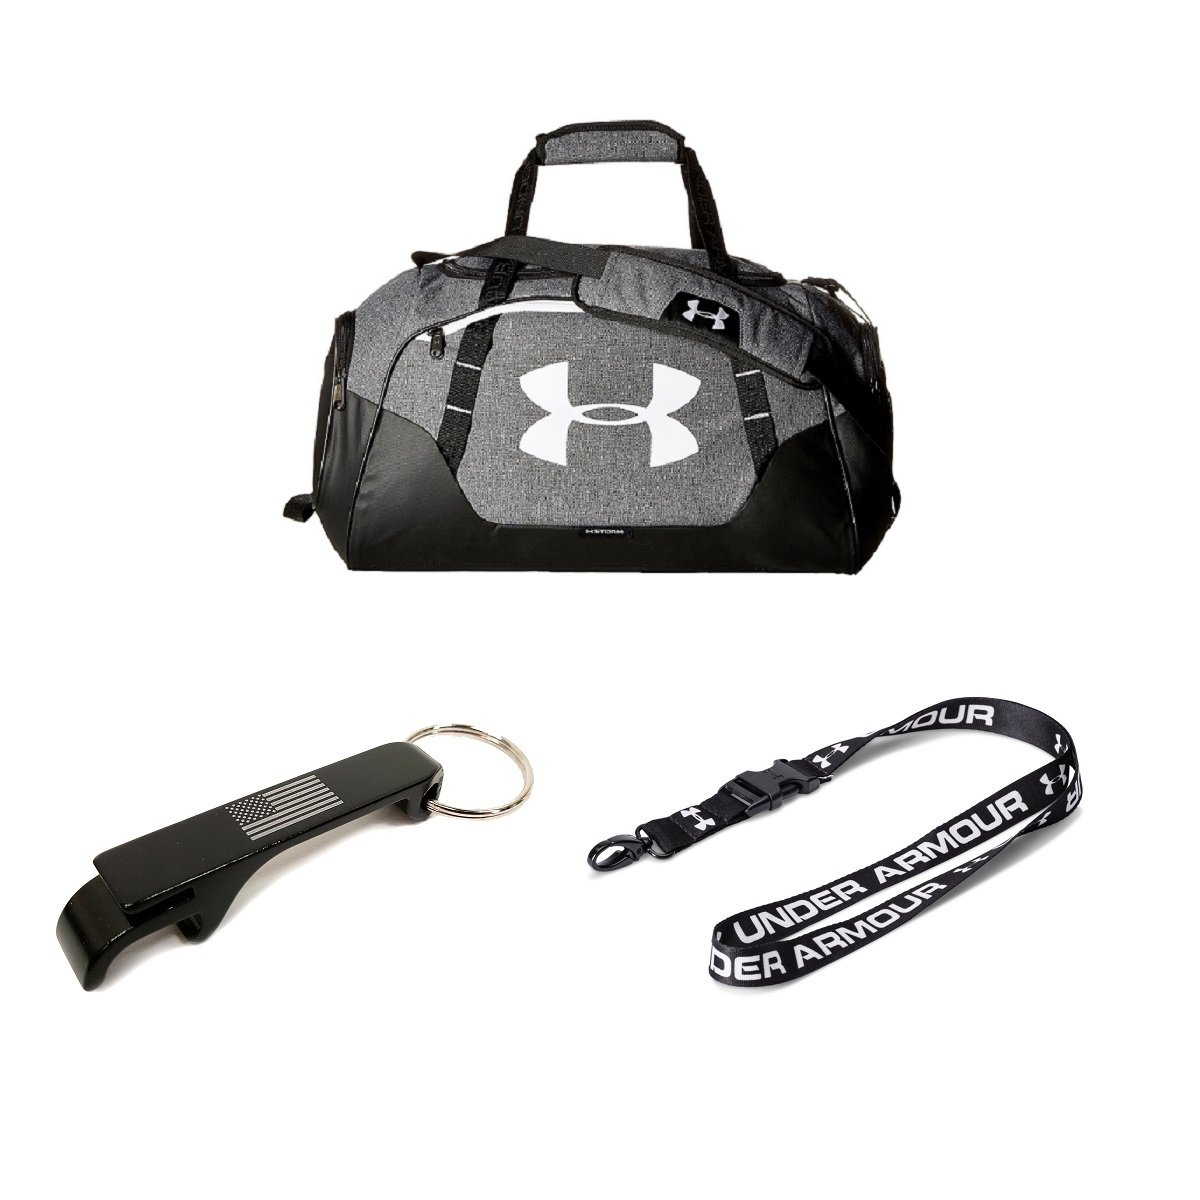 6227ae406a25 Under Armour Undeniable 3.0 XS Duffle Bag w Lanyard + USA Bottle Opener  (Graphite Black White)  Amazon.ca  Sports   Outdoors